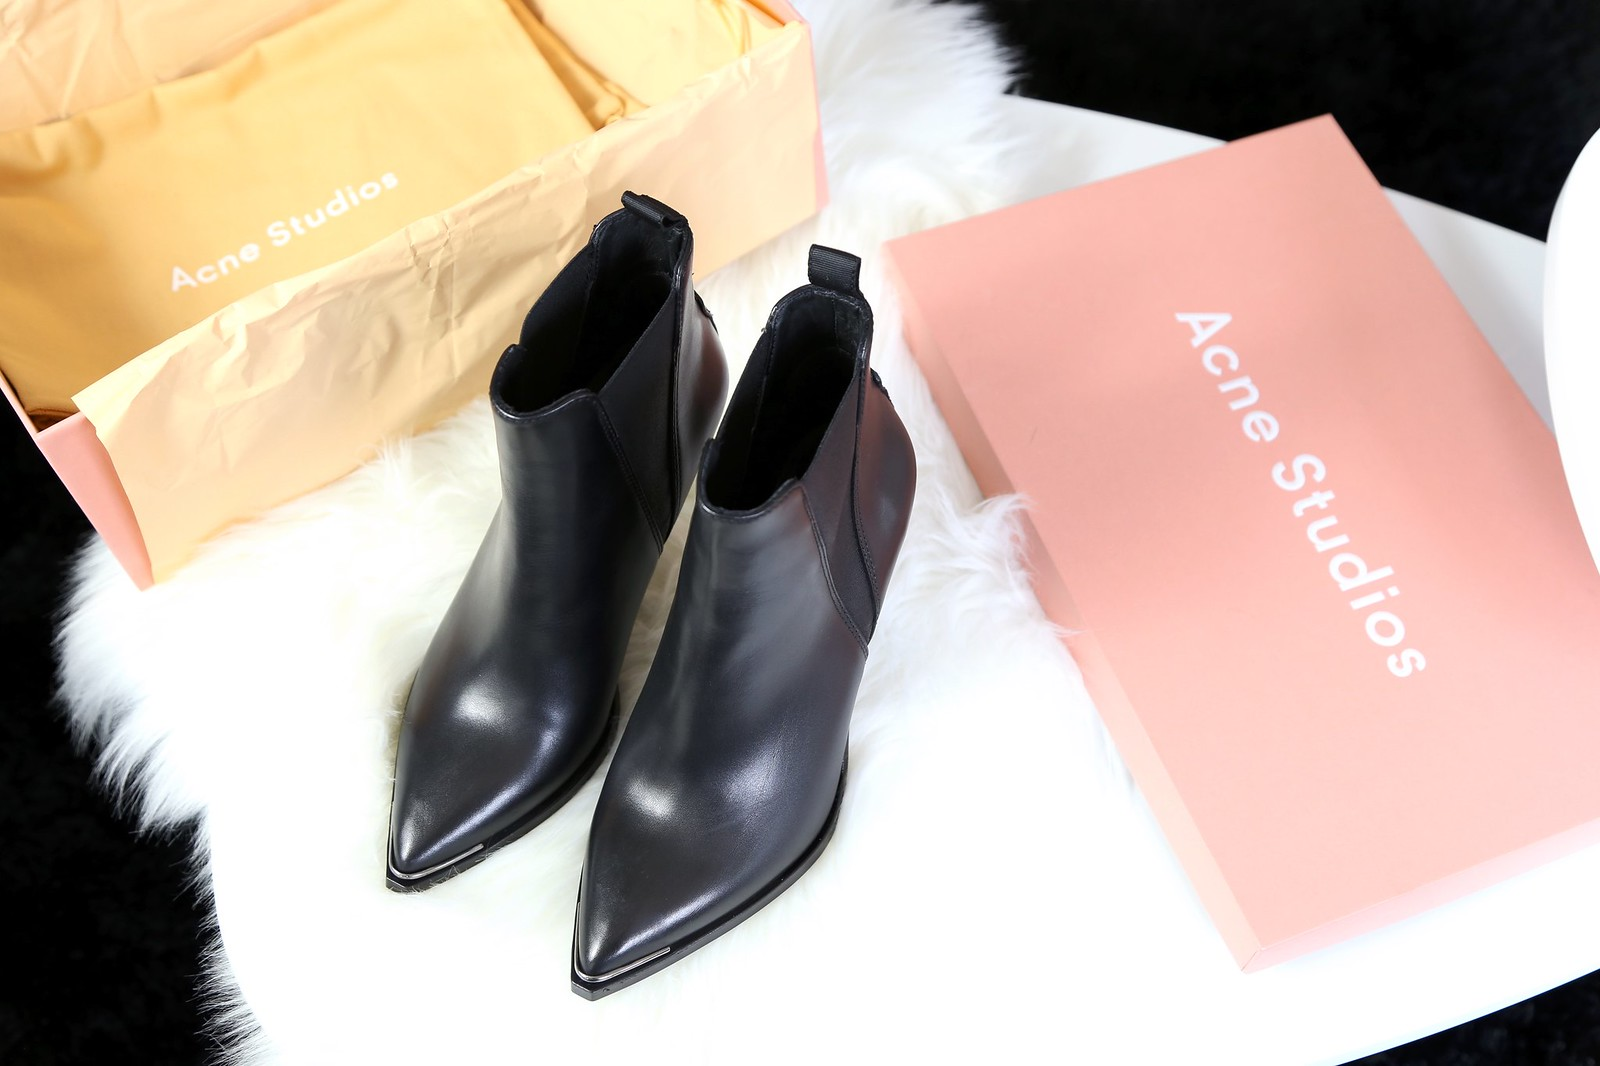 acnestudiosboots, acnestudiojensboots, acnestudios, krystelcouture,